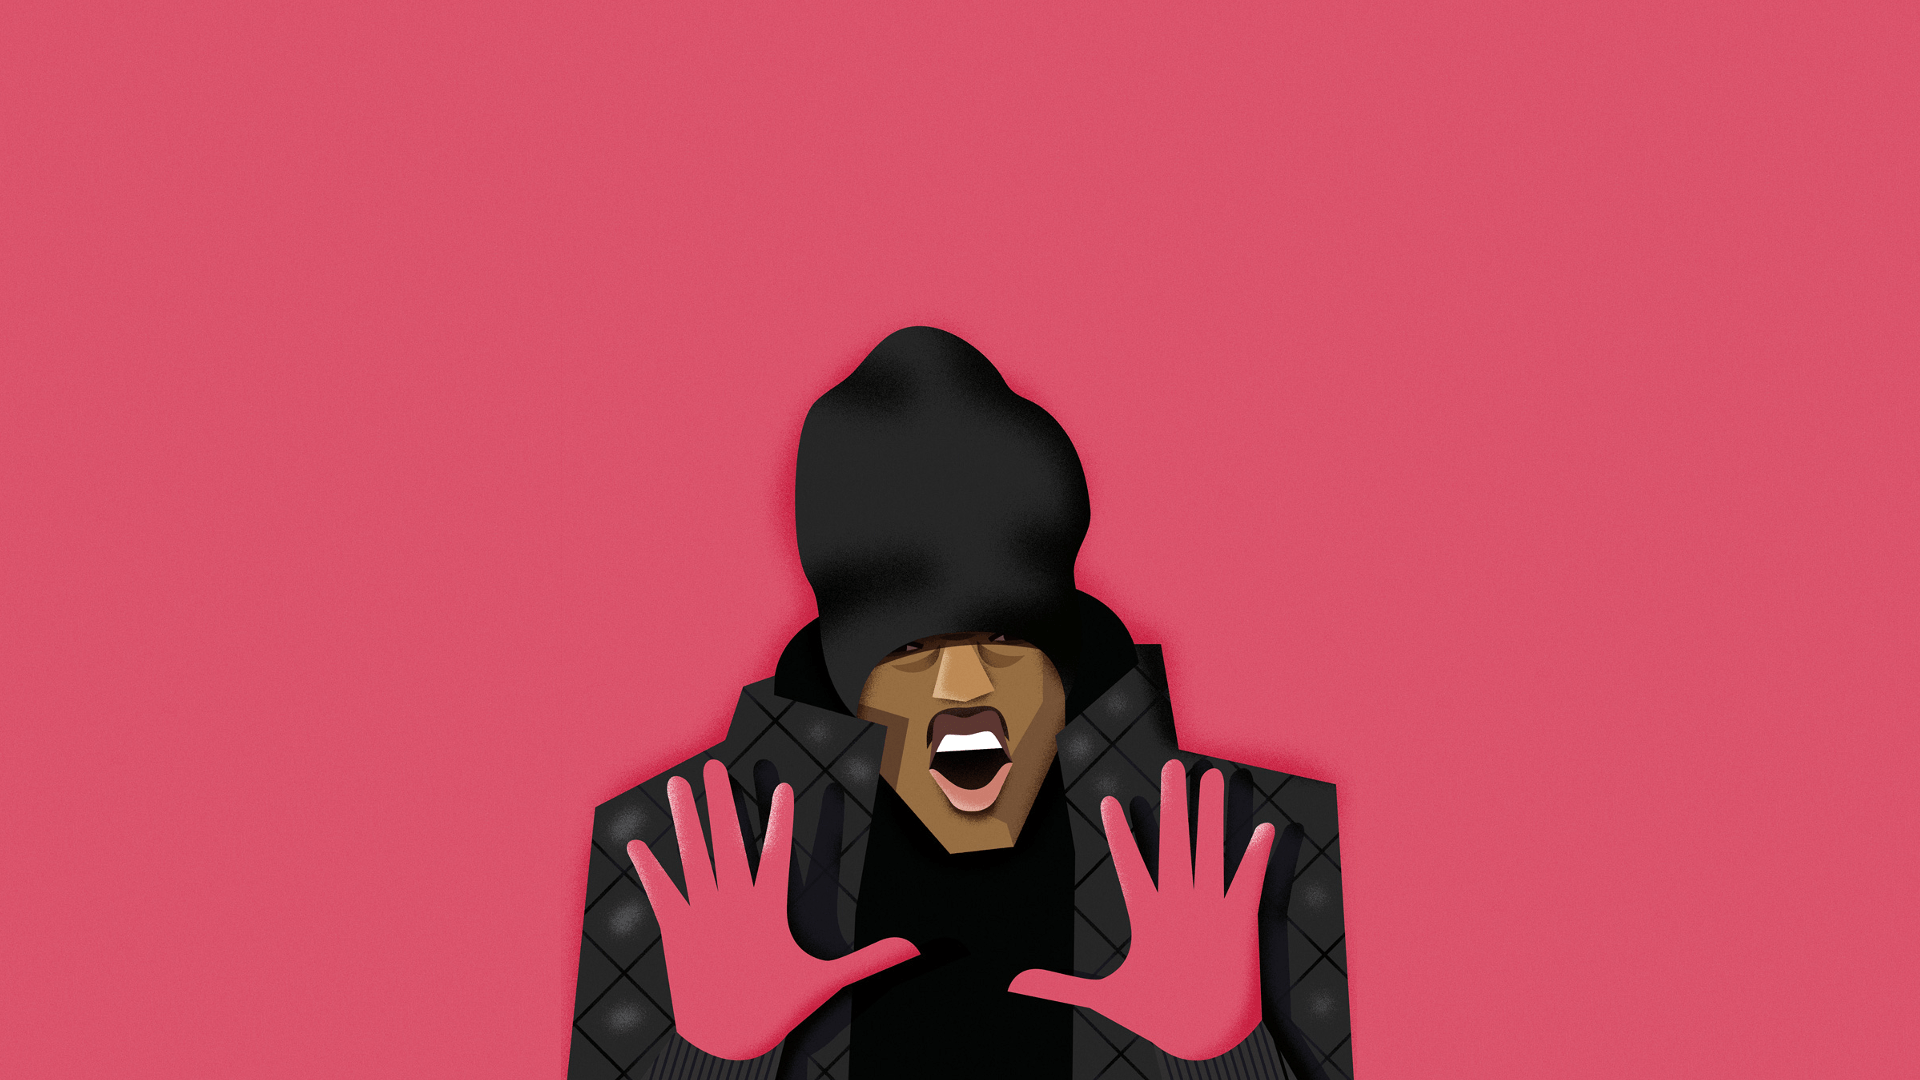 Animated Rappers Wallpapers - Wallpaper Cave